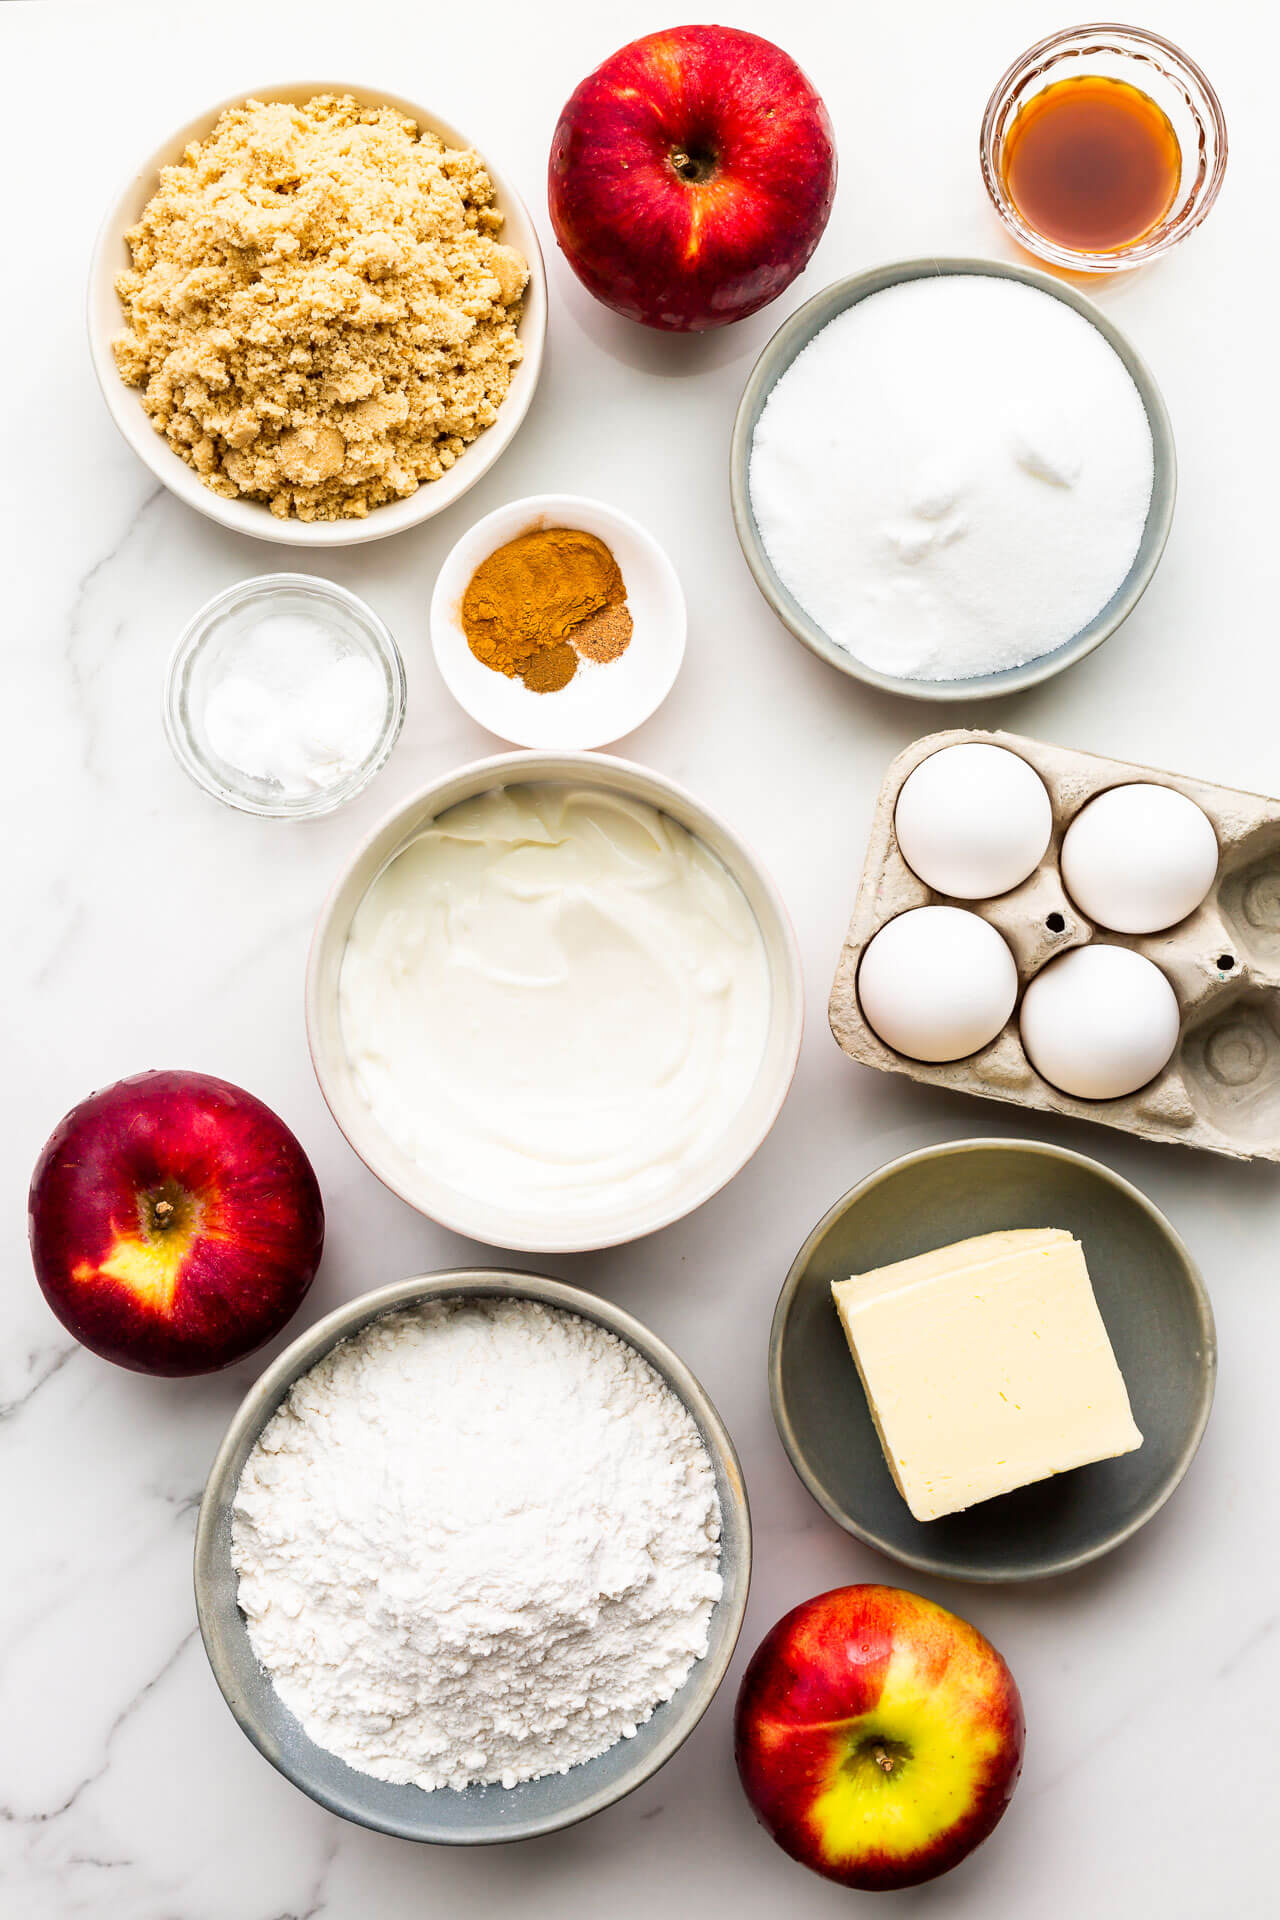 Ingredients to make apple bundt cake measured out including apples, brown sugar, white sugar, spices, sour cream, eggs, salt, baking powder, baking soda, butter, and flour